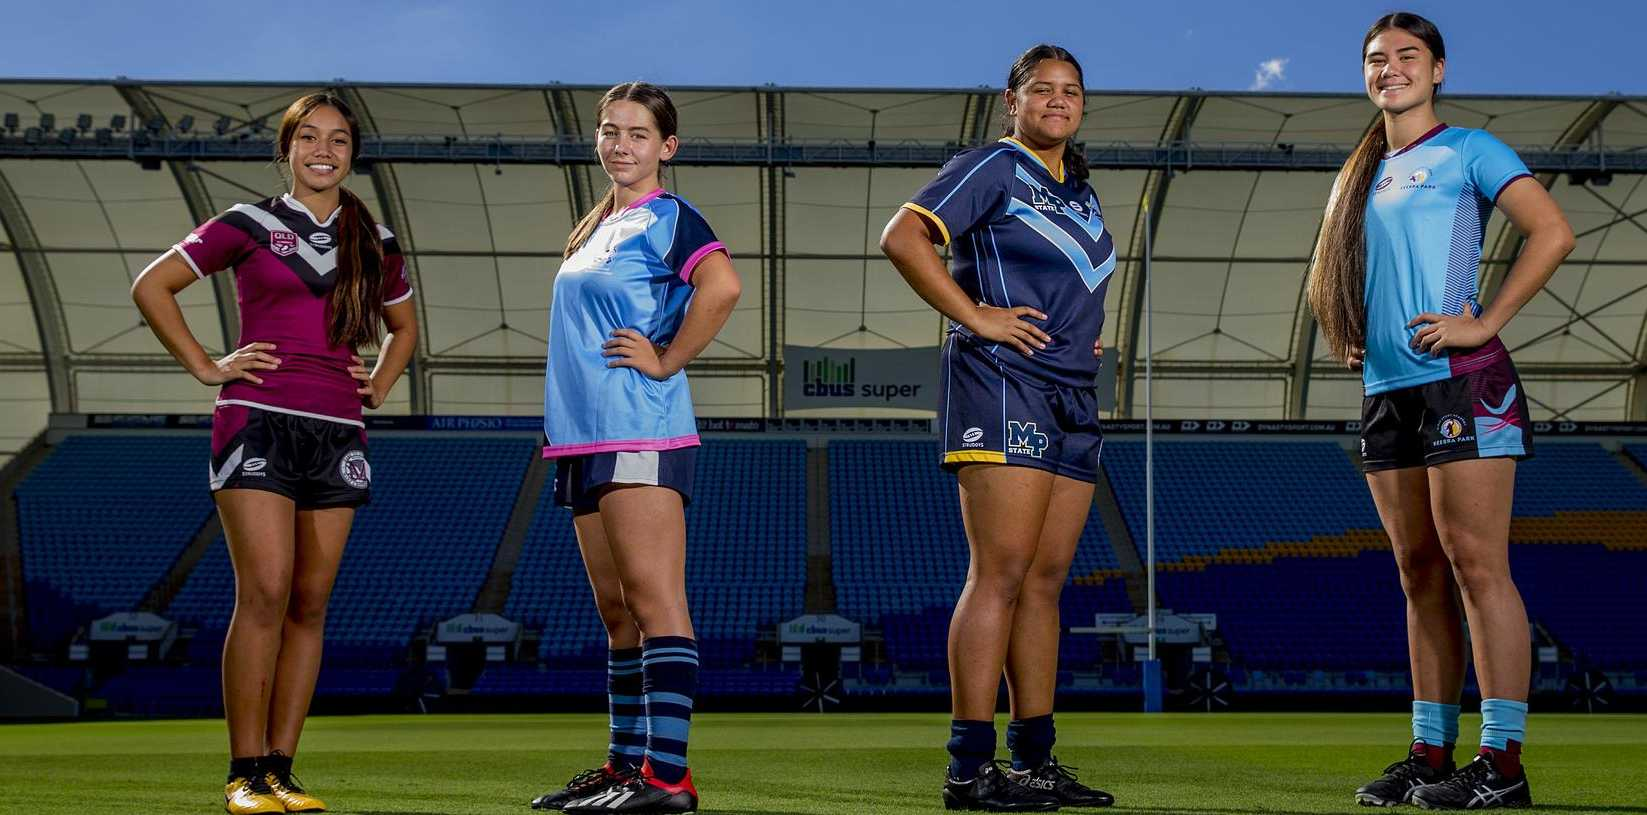 Titans Cup rugby league preview. Leilani Taofinuu, 13 (Marsden), Lily Prendergast, 17 (Marymount College), Jaydah Tofae, 15 (Mabel Park SHS), and Sunny Gerrard, 17 (Keebra Park SHS) at Cbus Super Stadium, Robina. Picture: Jerad Williams